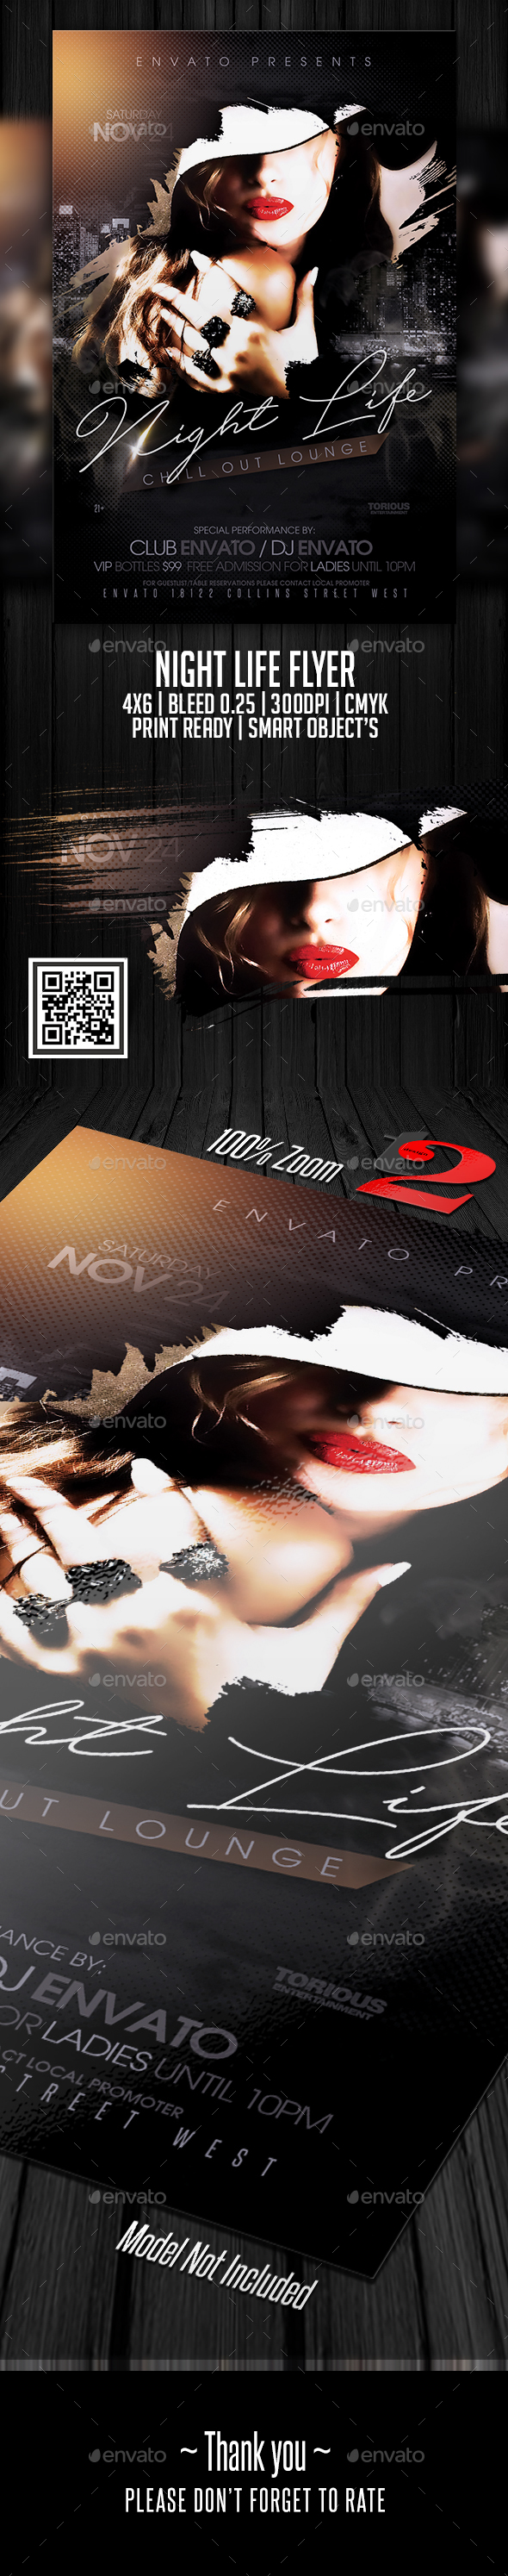 Night Life Flyer Template - Clubs & Parties Events